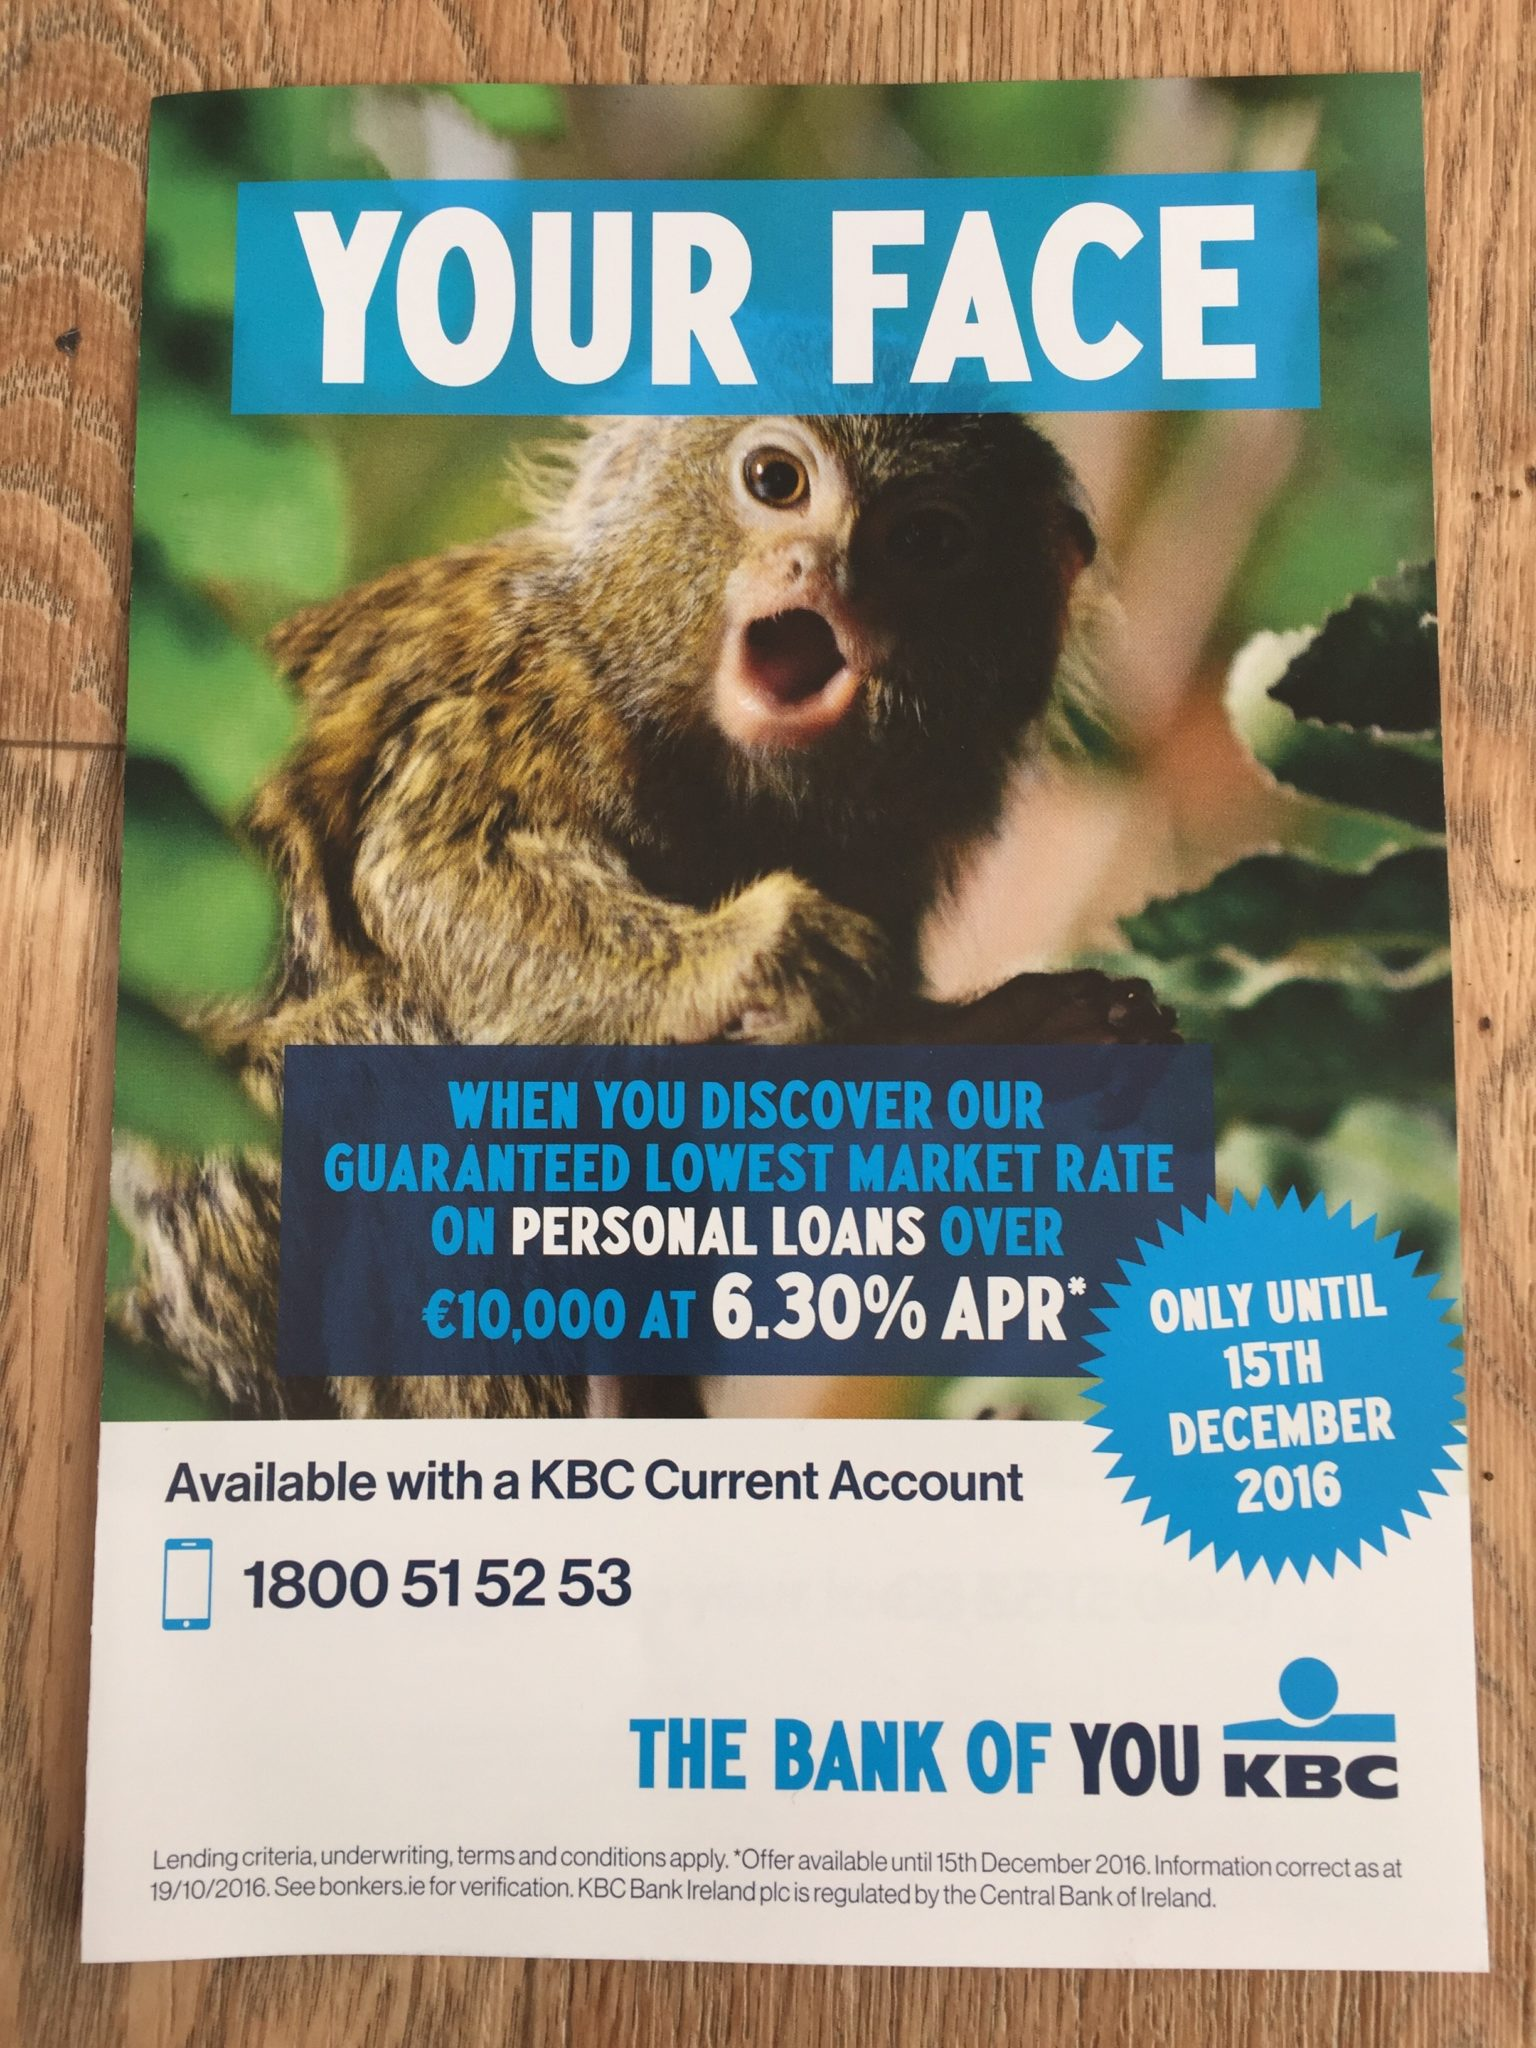 KBC – your face when you discover our guaranteed lowest market rate